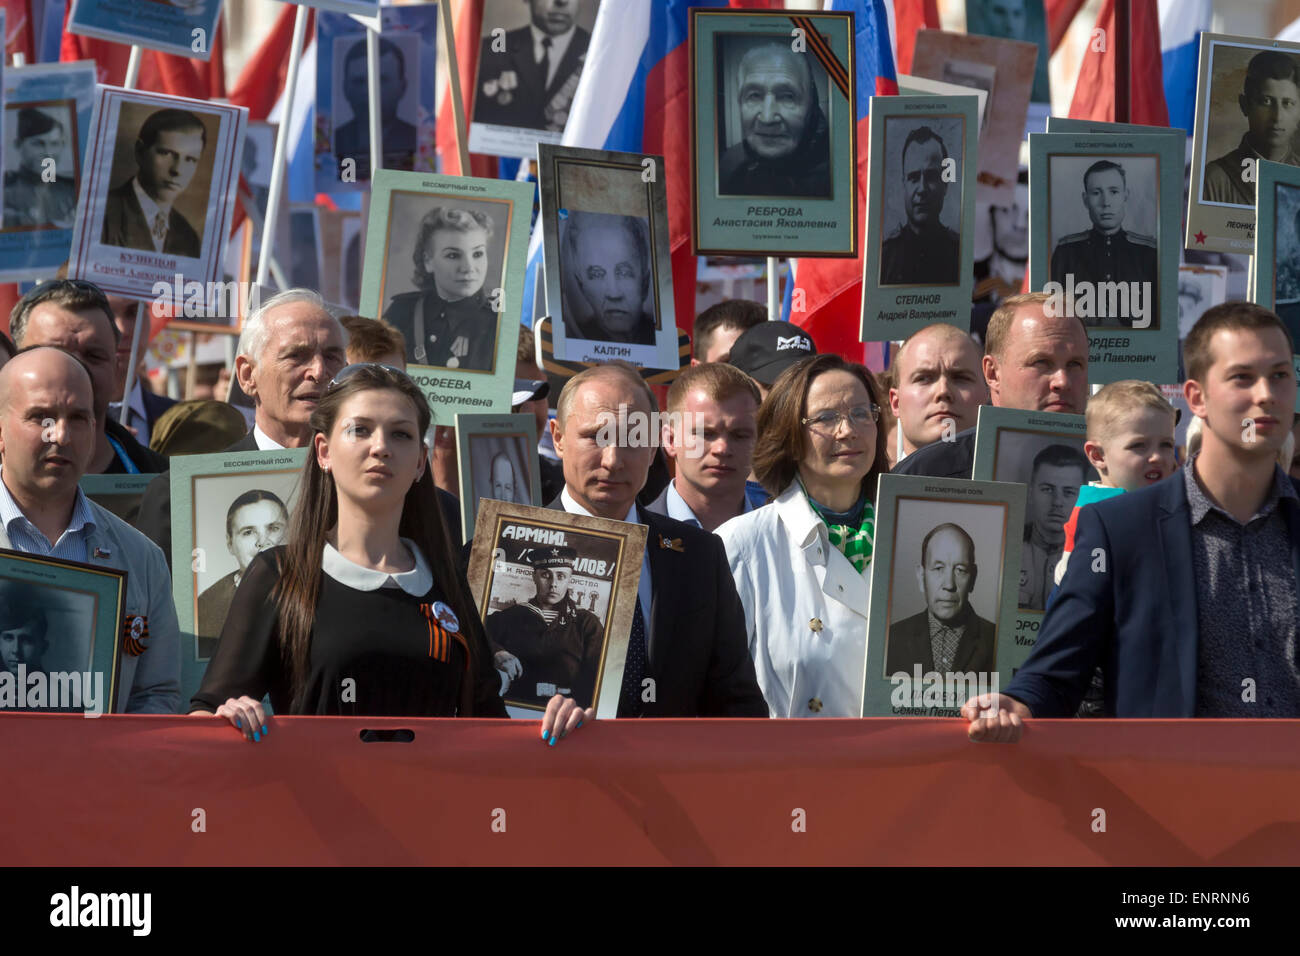 Moscow, Russia. 09th May, 2015. Russian President Vladimir Putin (in center) with the portrait of his father, the - Stock Image